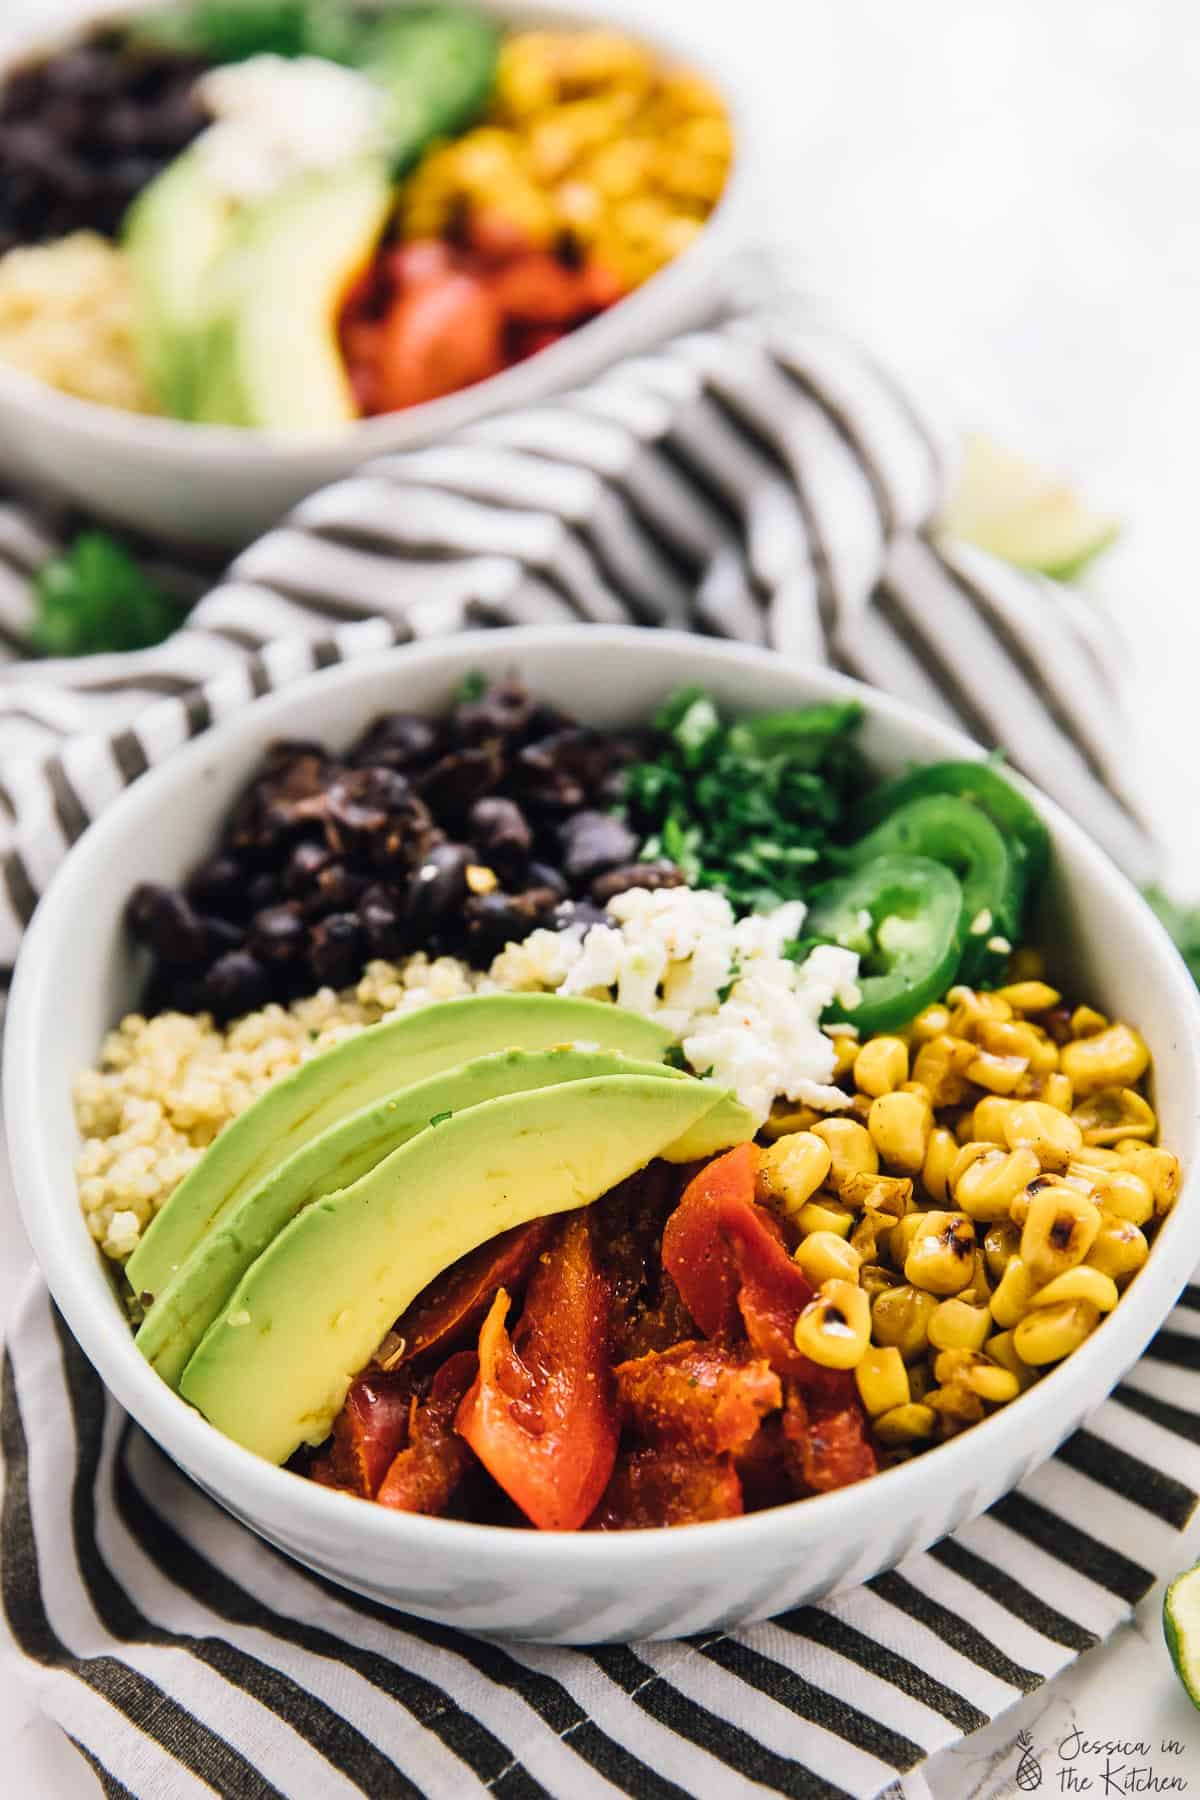 These Mexican Street Corn Burrito Bowls are the healthier, but just as tasty, versions of your favourite burrito! The bowls are drizzled with a creamy and smooth lime crema for a filling and delicious dish that's perfect for meal prep! via https://jessicainthekitchen.com